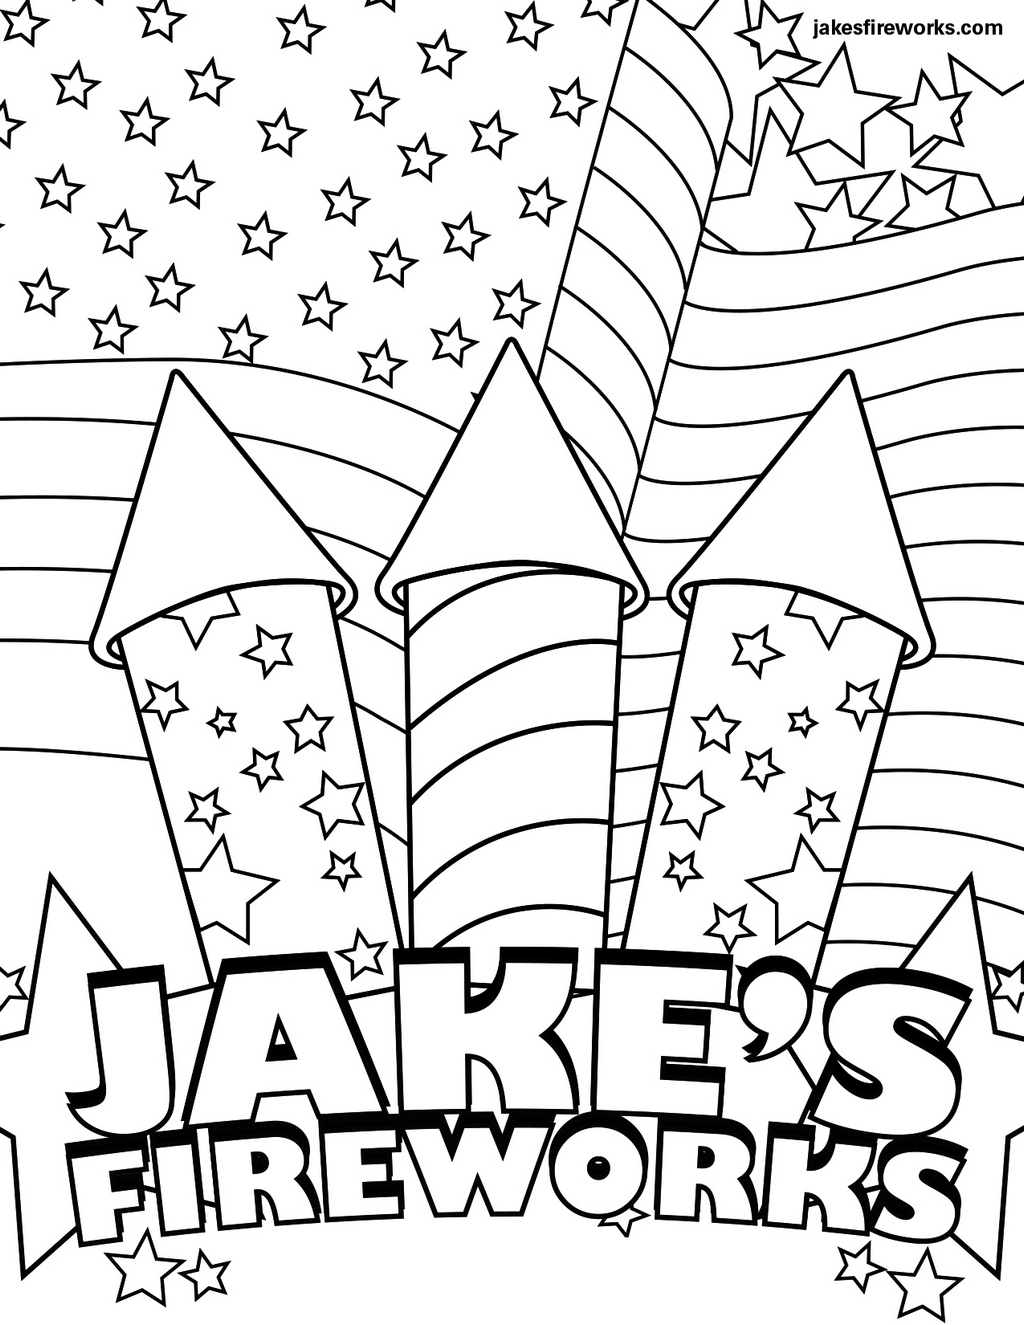 Fireworks Coloring Pages Sparkler Fireworks Coloring Pages  Coloring Pages